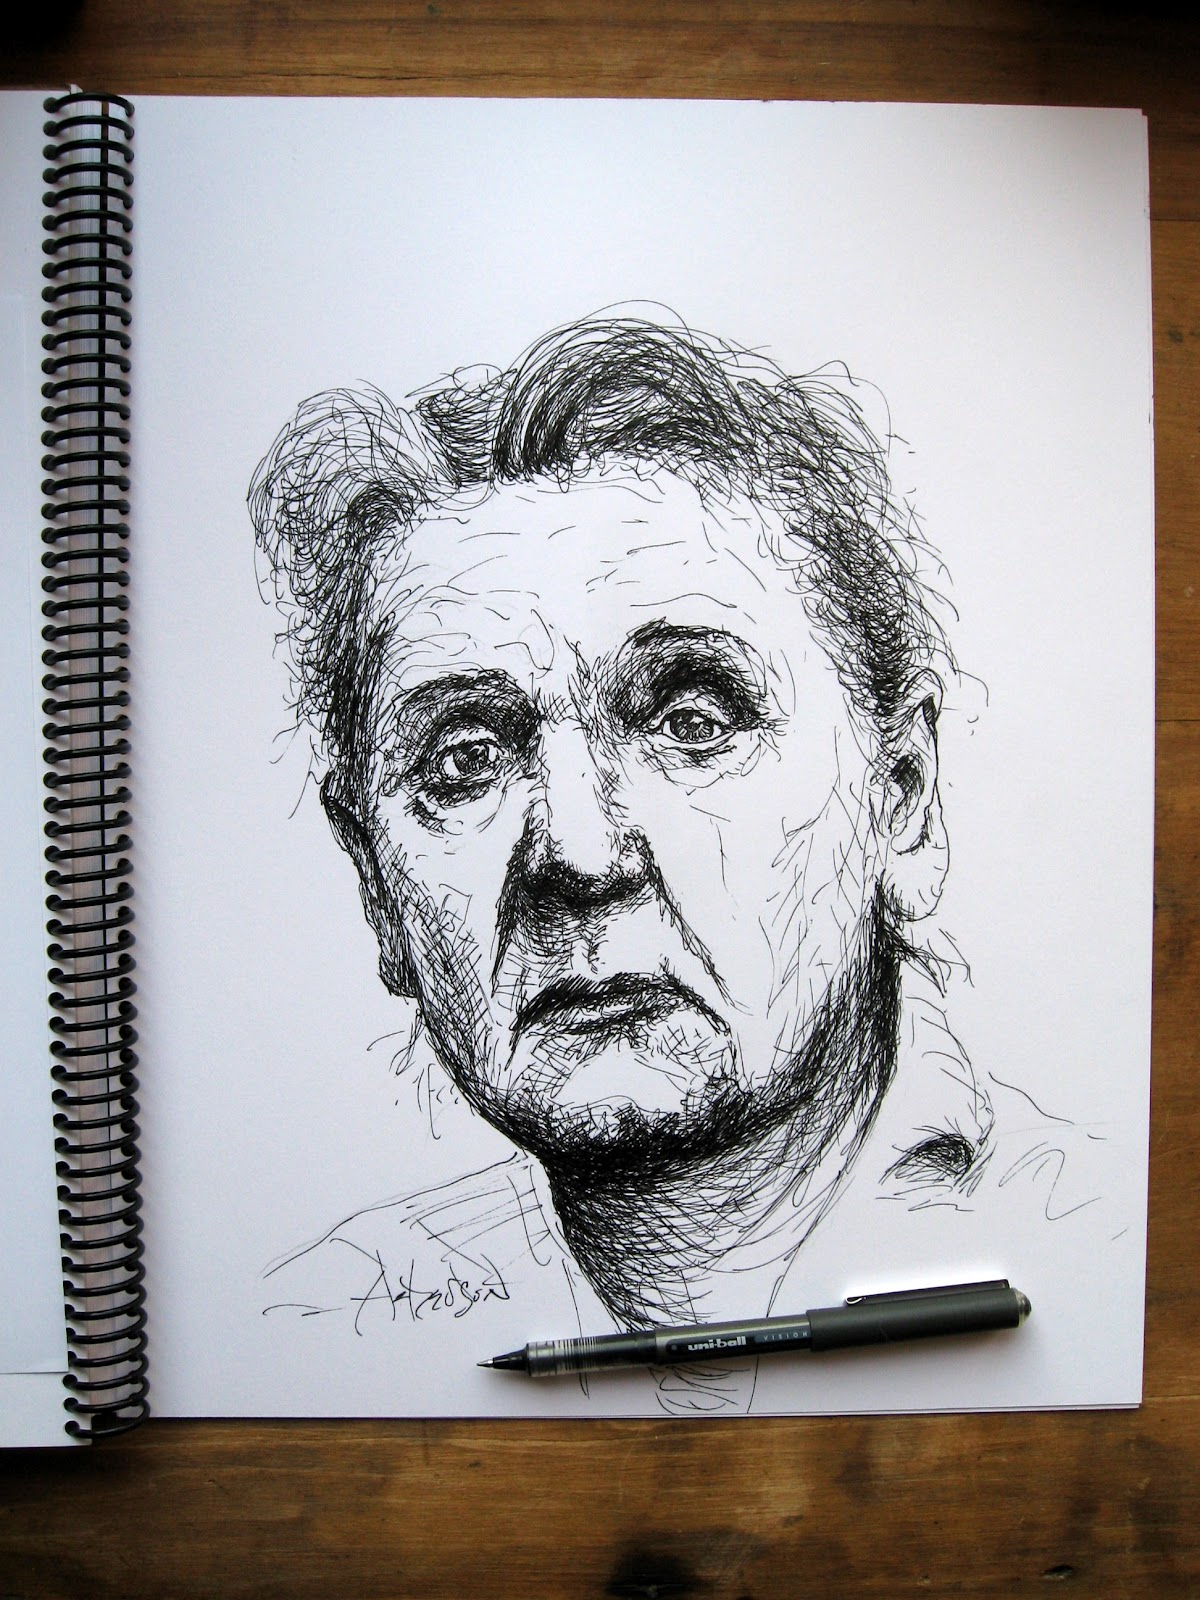 john ackerson art : jane addams - portrait pen drawing and sketch